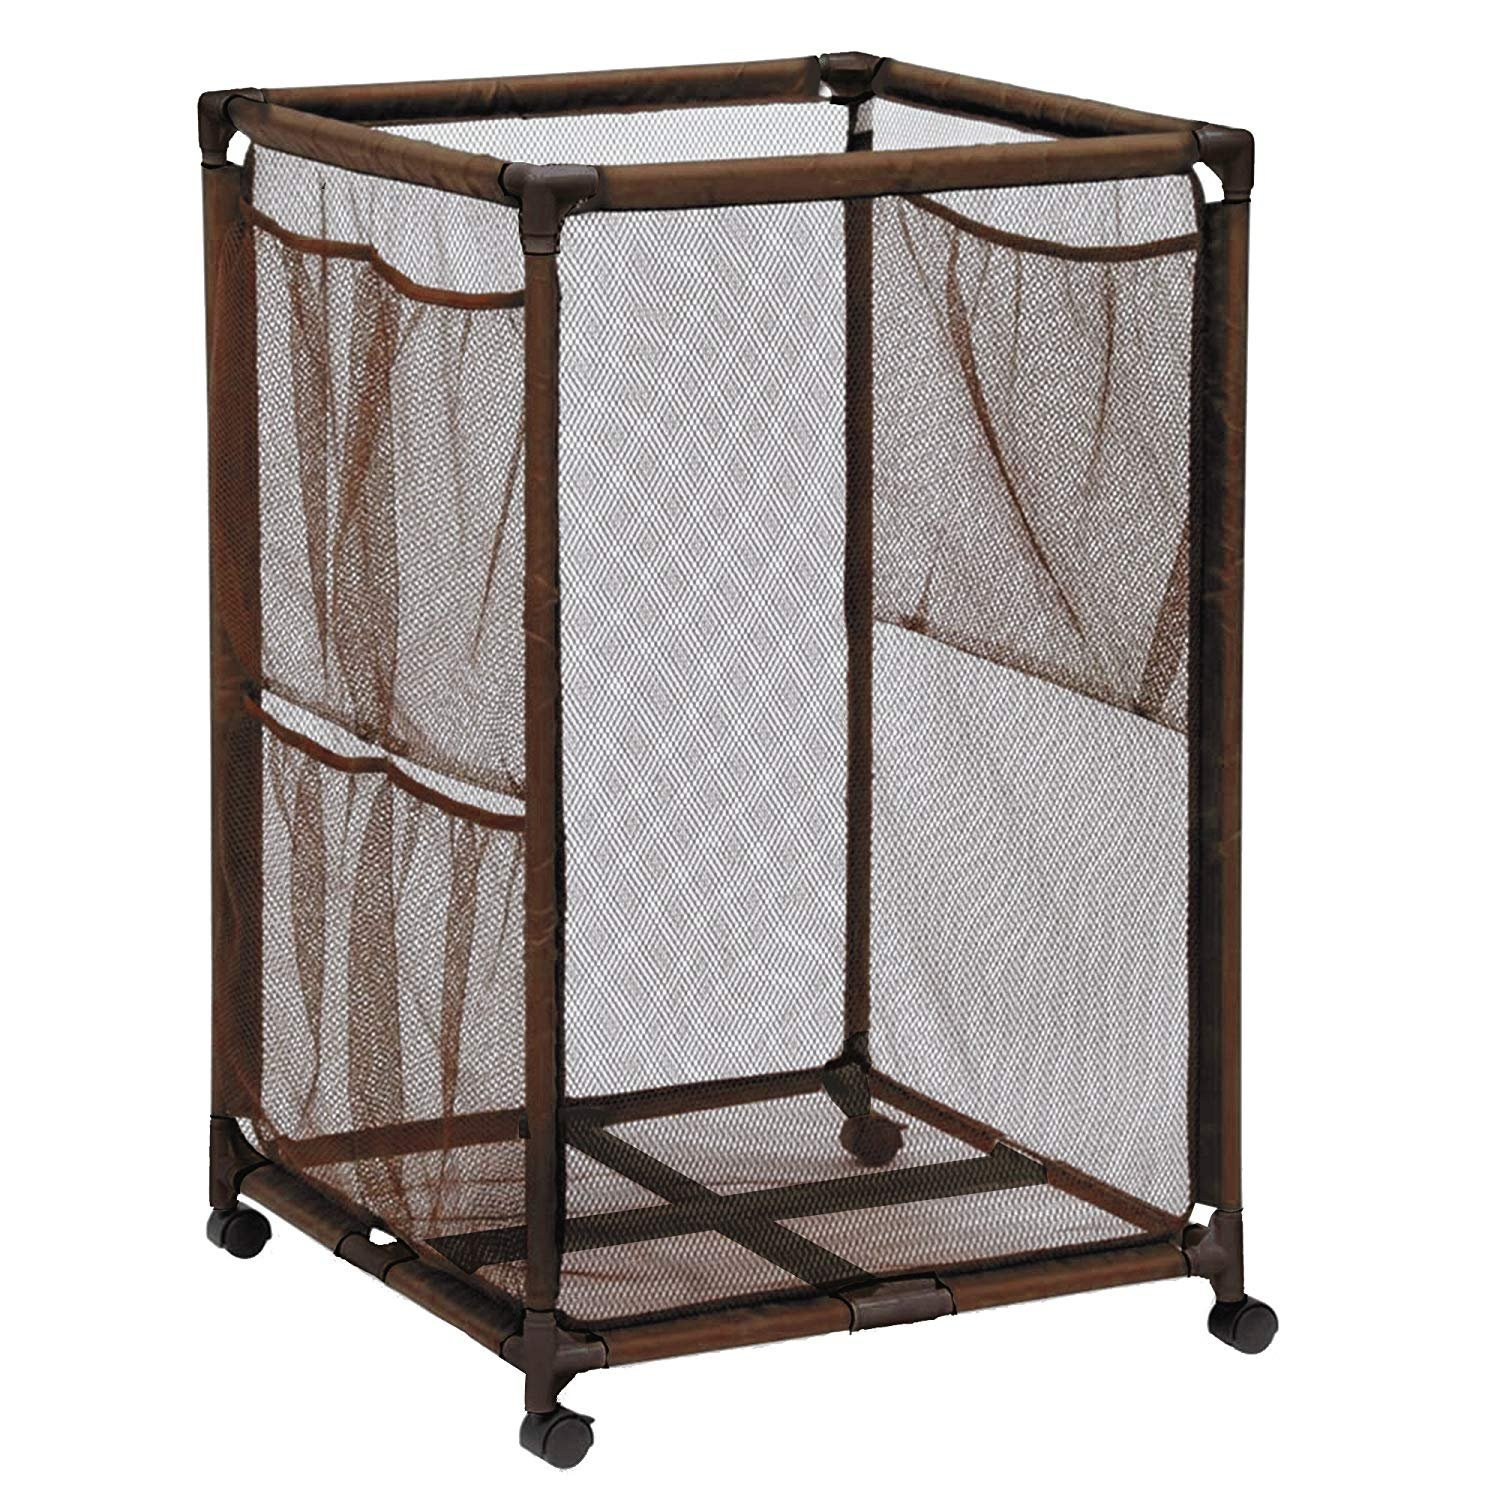 Essentially Yours Rolling Pool Storage Organizer Bin, Large, Brown by Essentially Yours